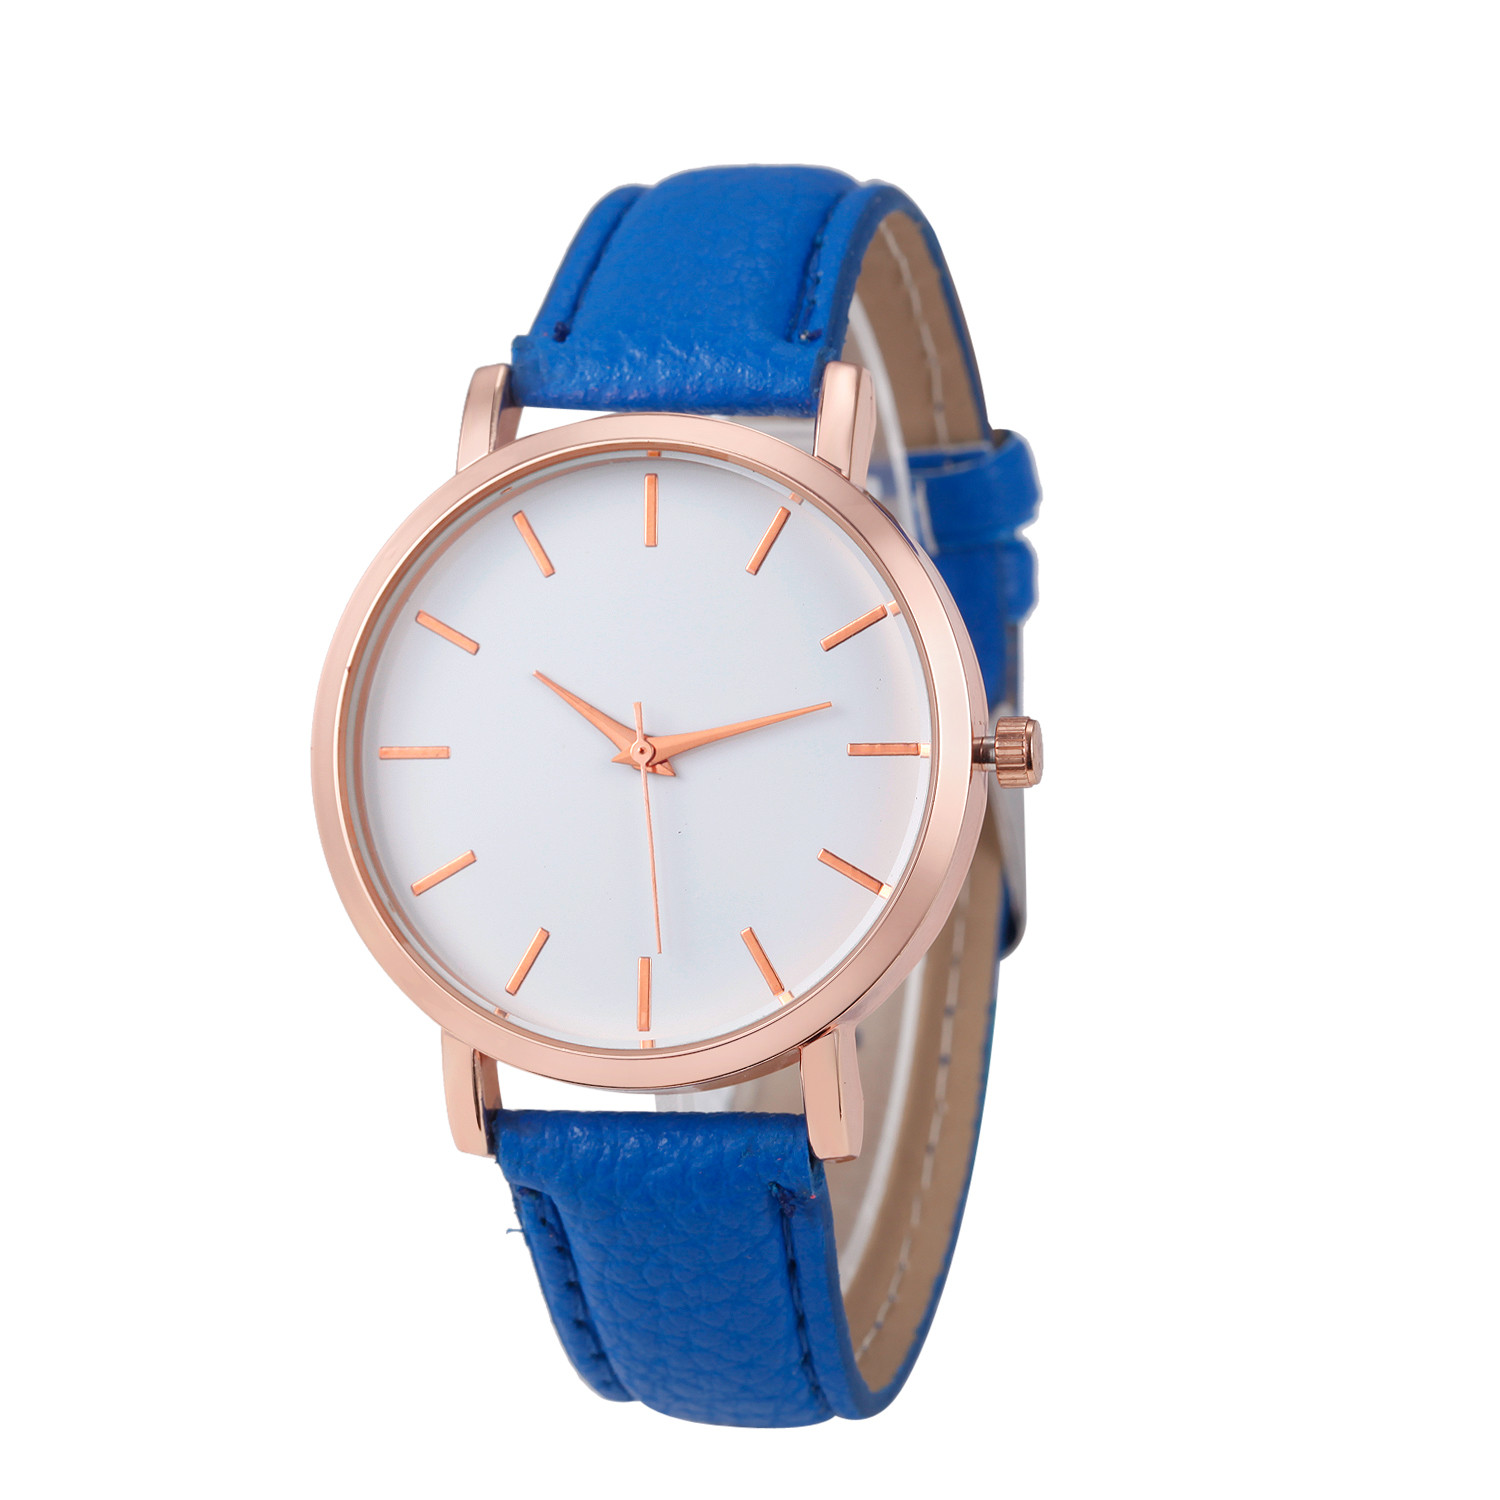 Fashion Lady Watch with Blue Leather Strap